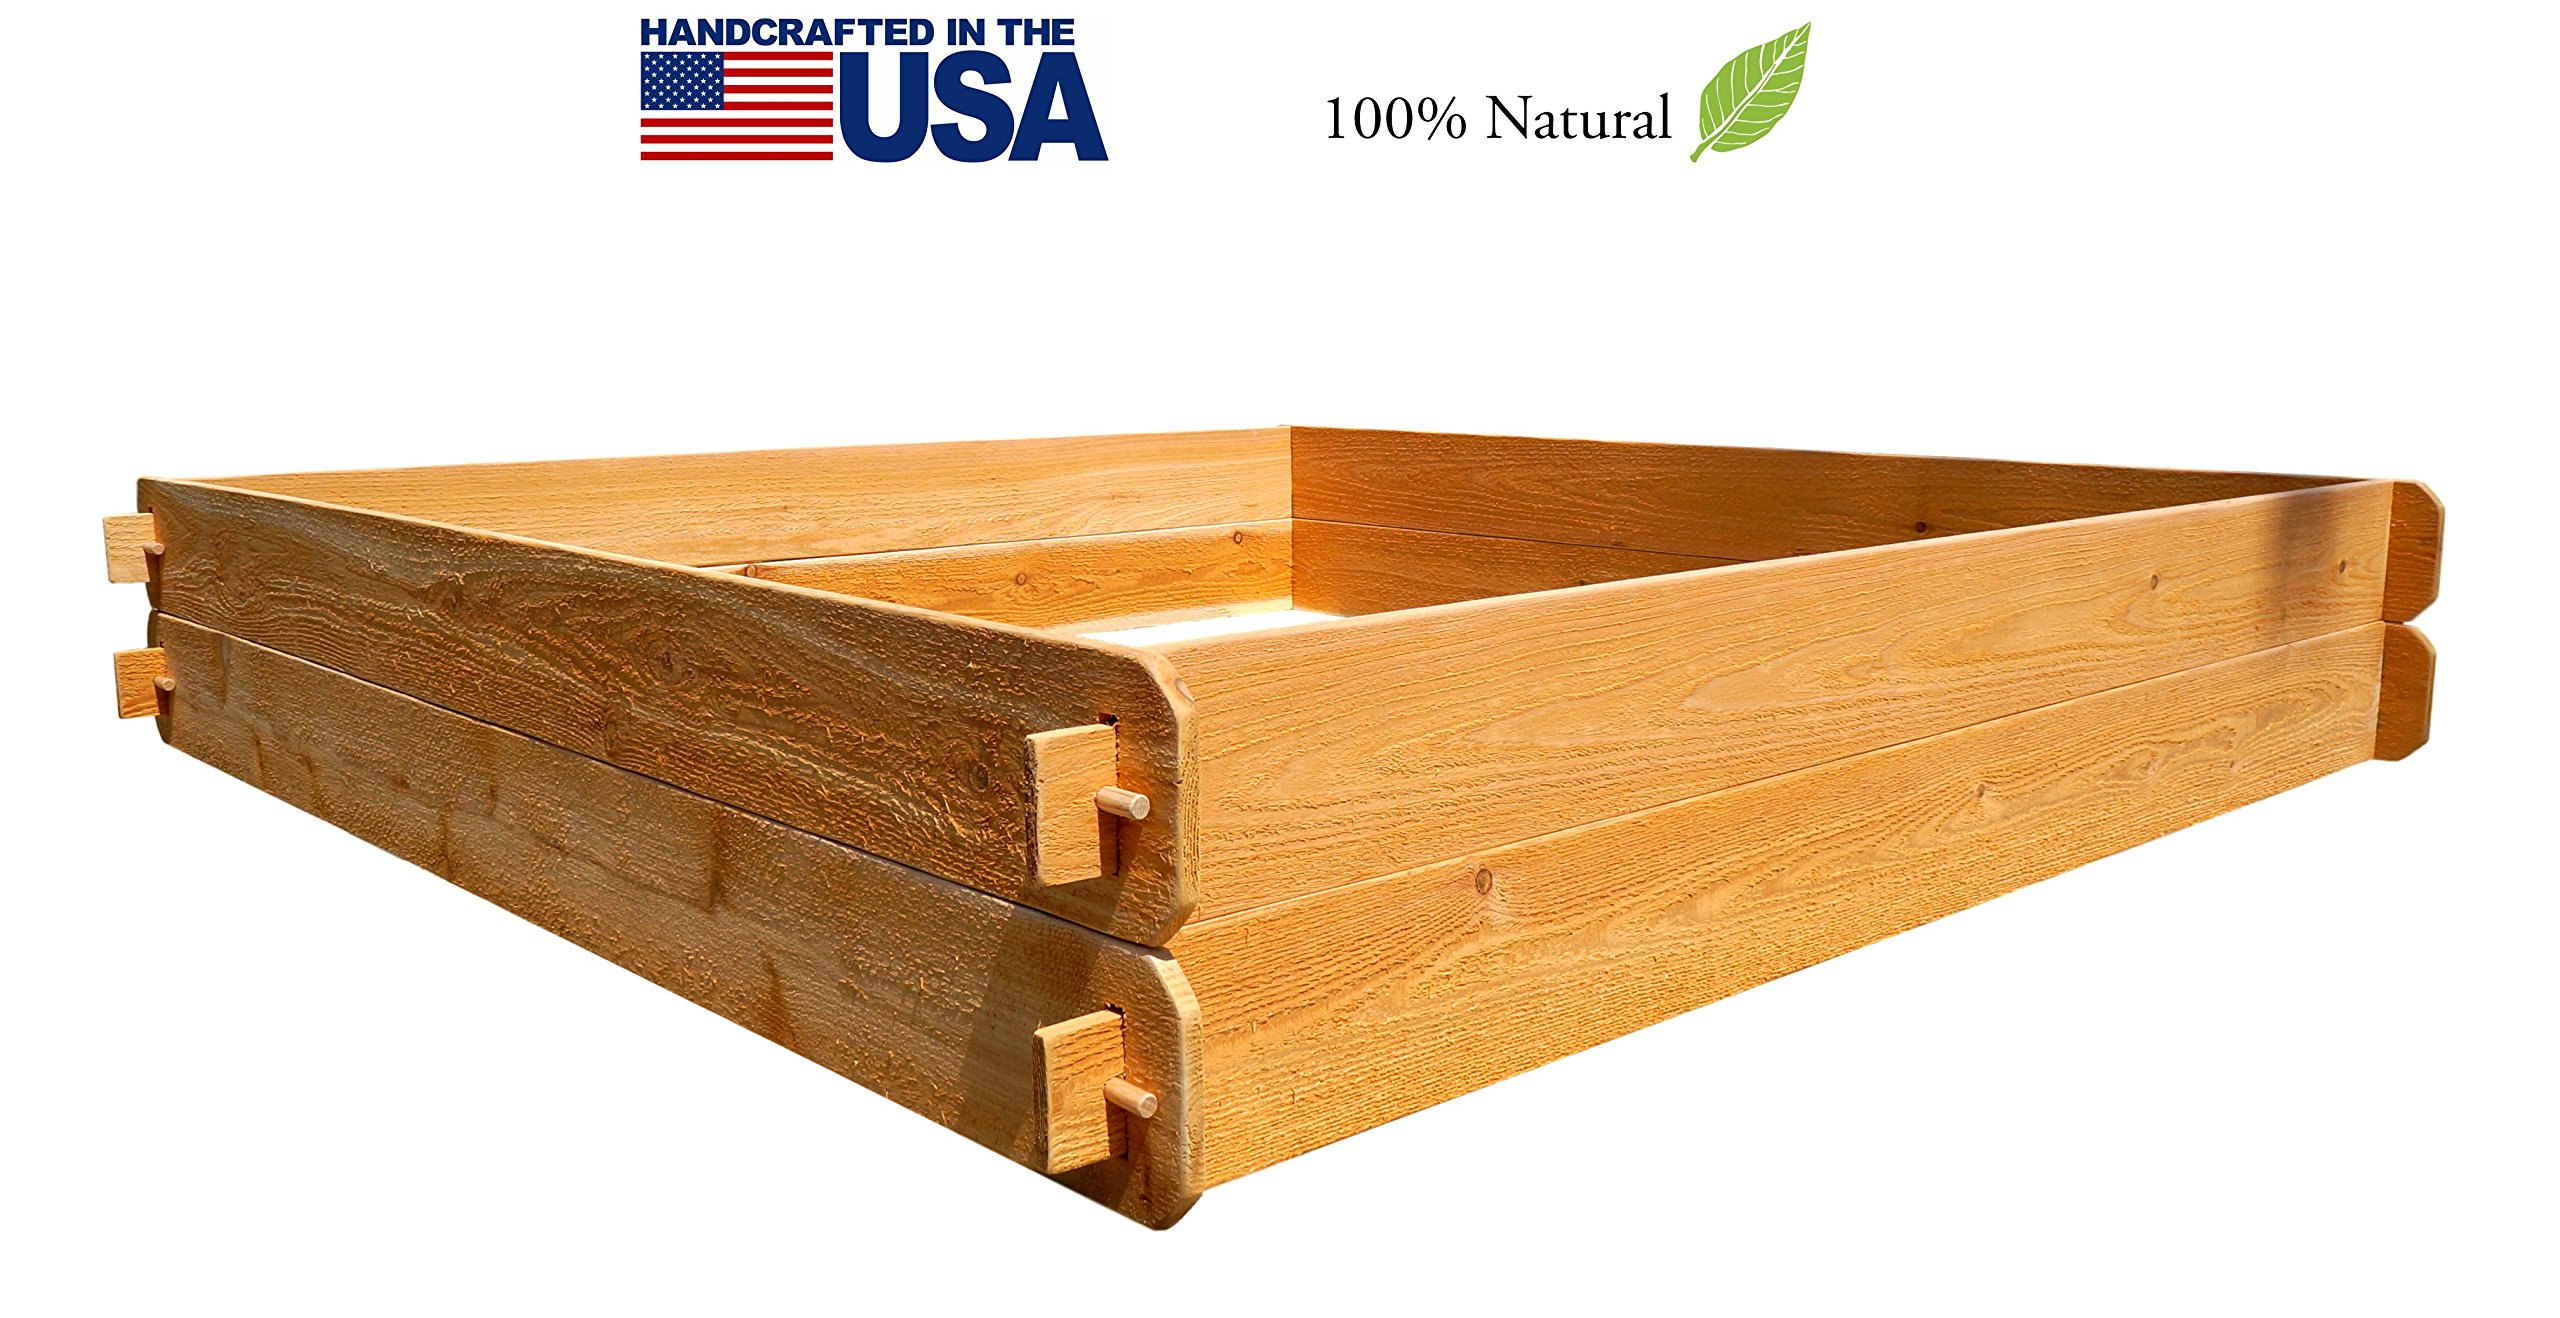 Timberlane Gardens Raised Bed Kit Large Double Deep (Two 6x6) Western Red Cedar with Mortise and Tenon Joinery 6 Feet x 6 Feet by Timberlane Gardens